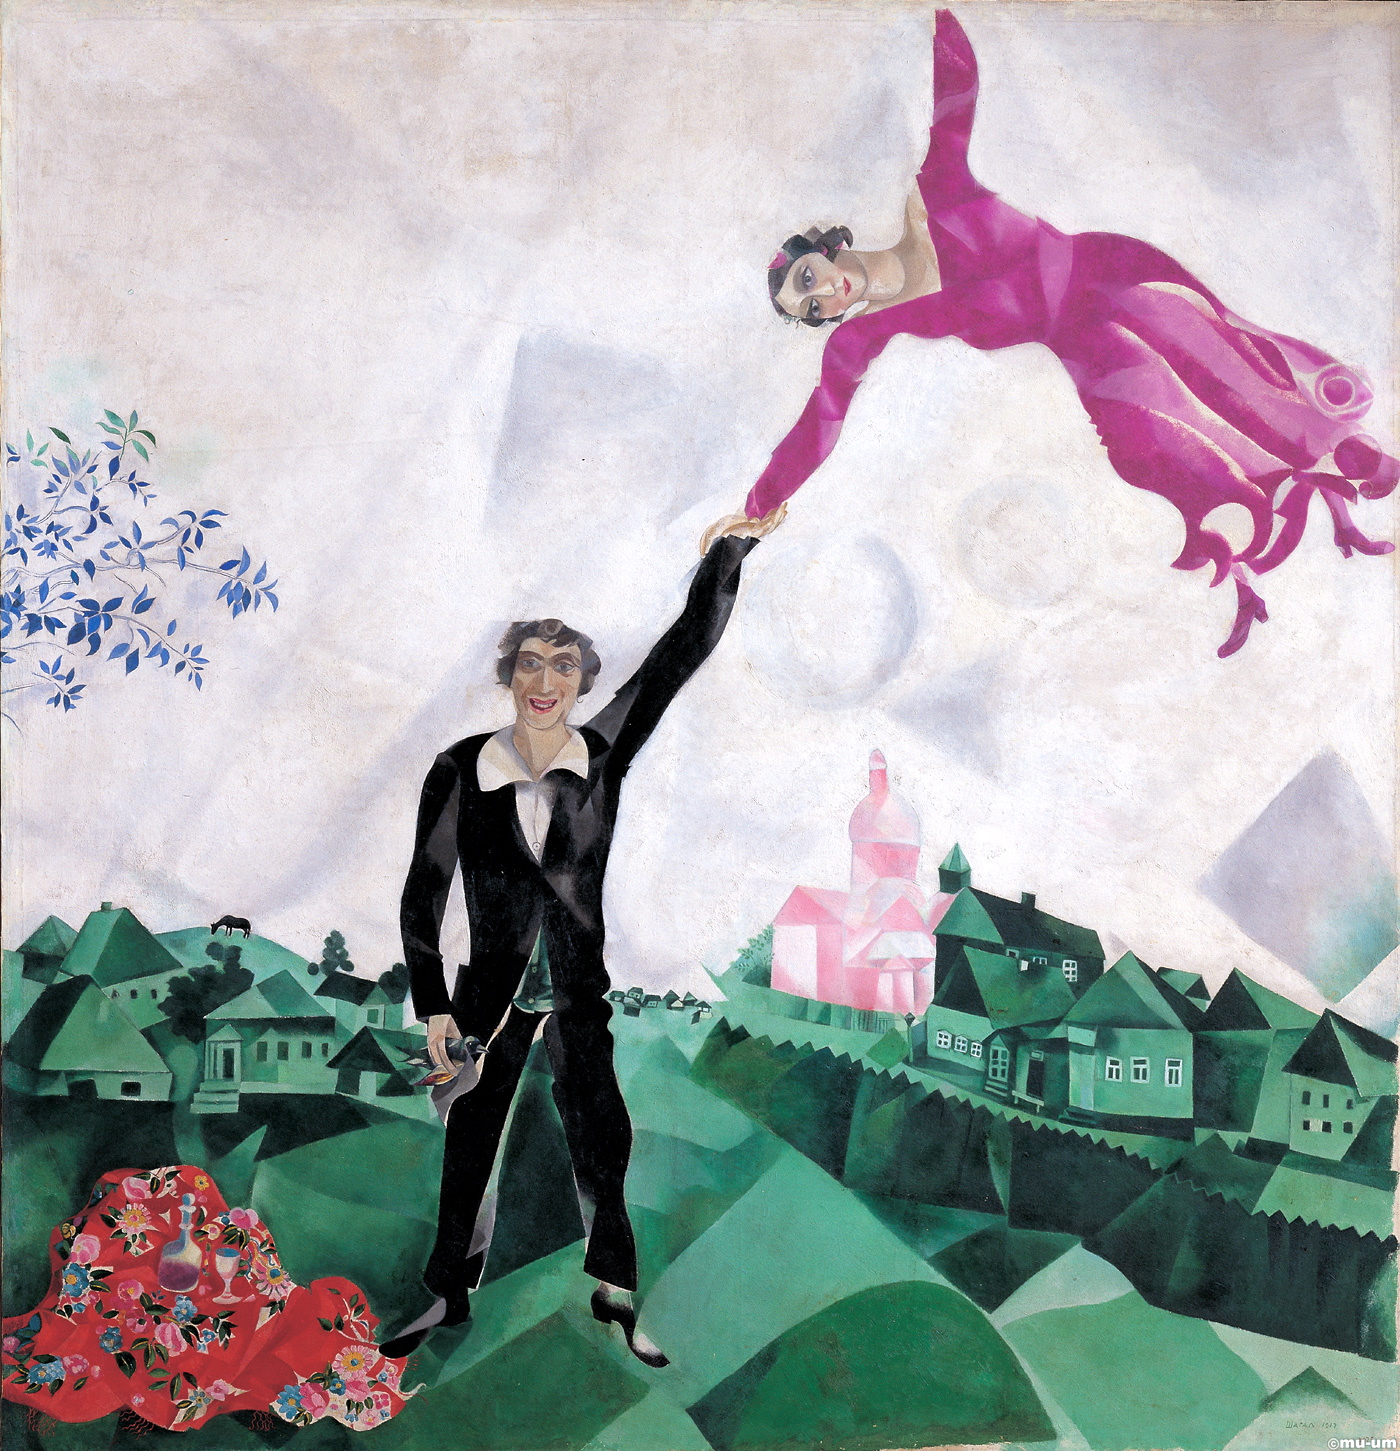 "Marc Chagall [French, born Russia (present-day Belarus), 1887-1985]: Over the Town, 1918. Oil on canvas, 45 x 56 cm. The State Tretyakov Gallery, Moscow, Russia. 'In his painting Over the City, Chagal and his wife Bella appear to be flying over Vitebsk while leaving in the space of Earth's gravity the little houses sinking to one side. The principle theme of Chagal's work is ""the time of man."" He understood this to mean ""man and his recollections, his reflections as something at the same time both existing and visible. It is a single being. And I portray it."" Therefore, the place allotted to any of the personages does not need to follow any laws of logic or physics and the figurative world loses its self-sufficiency and becomes only a pretext for expressing experiences. His ability to combine the lofty with the ordinary was one of the specific qualities of Chagal's art. Even when depicting two lovers hovering over the city and daily life, the artist does not forget about details. Bella's slippers, the lace of her dress, the very prosaic scene from life – all of this does not detract from the sense of the flight of these souls in love.' (© The State Tretyakov Gallery)"